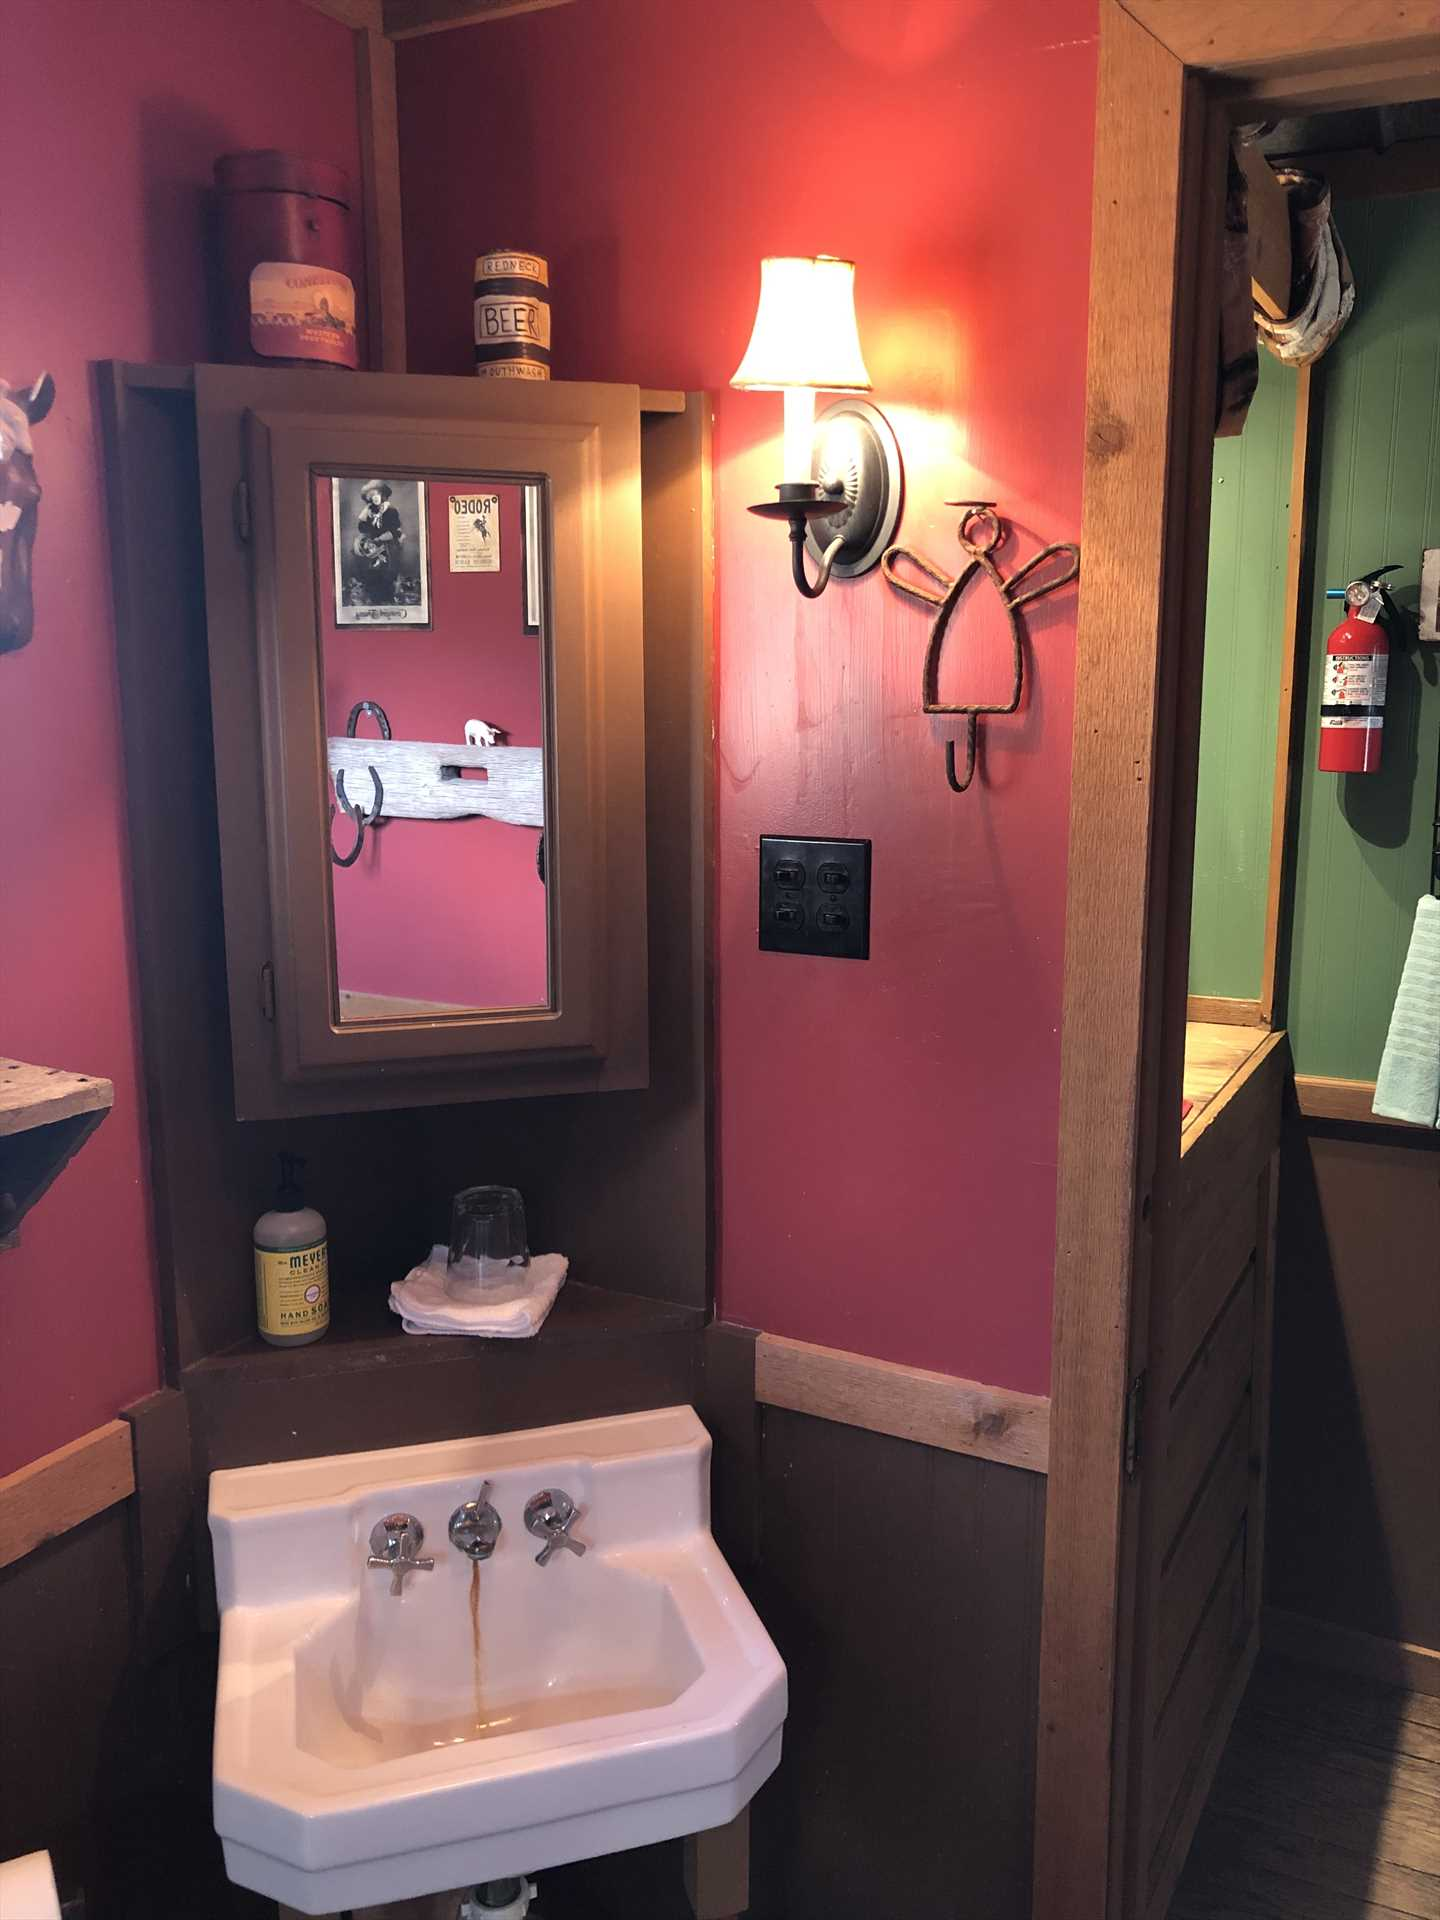 Even the decorative touches in full bath catch our guests' attention! Our recent visitor Amy pointed out